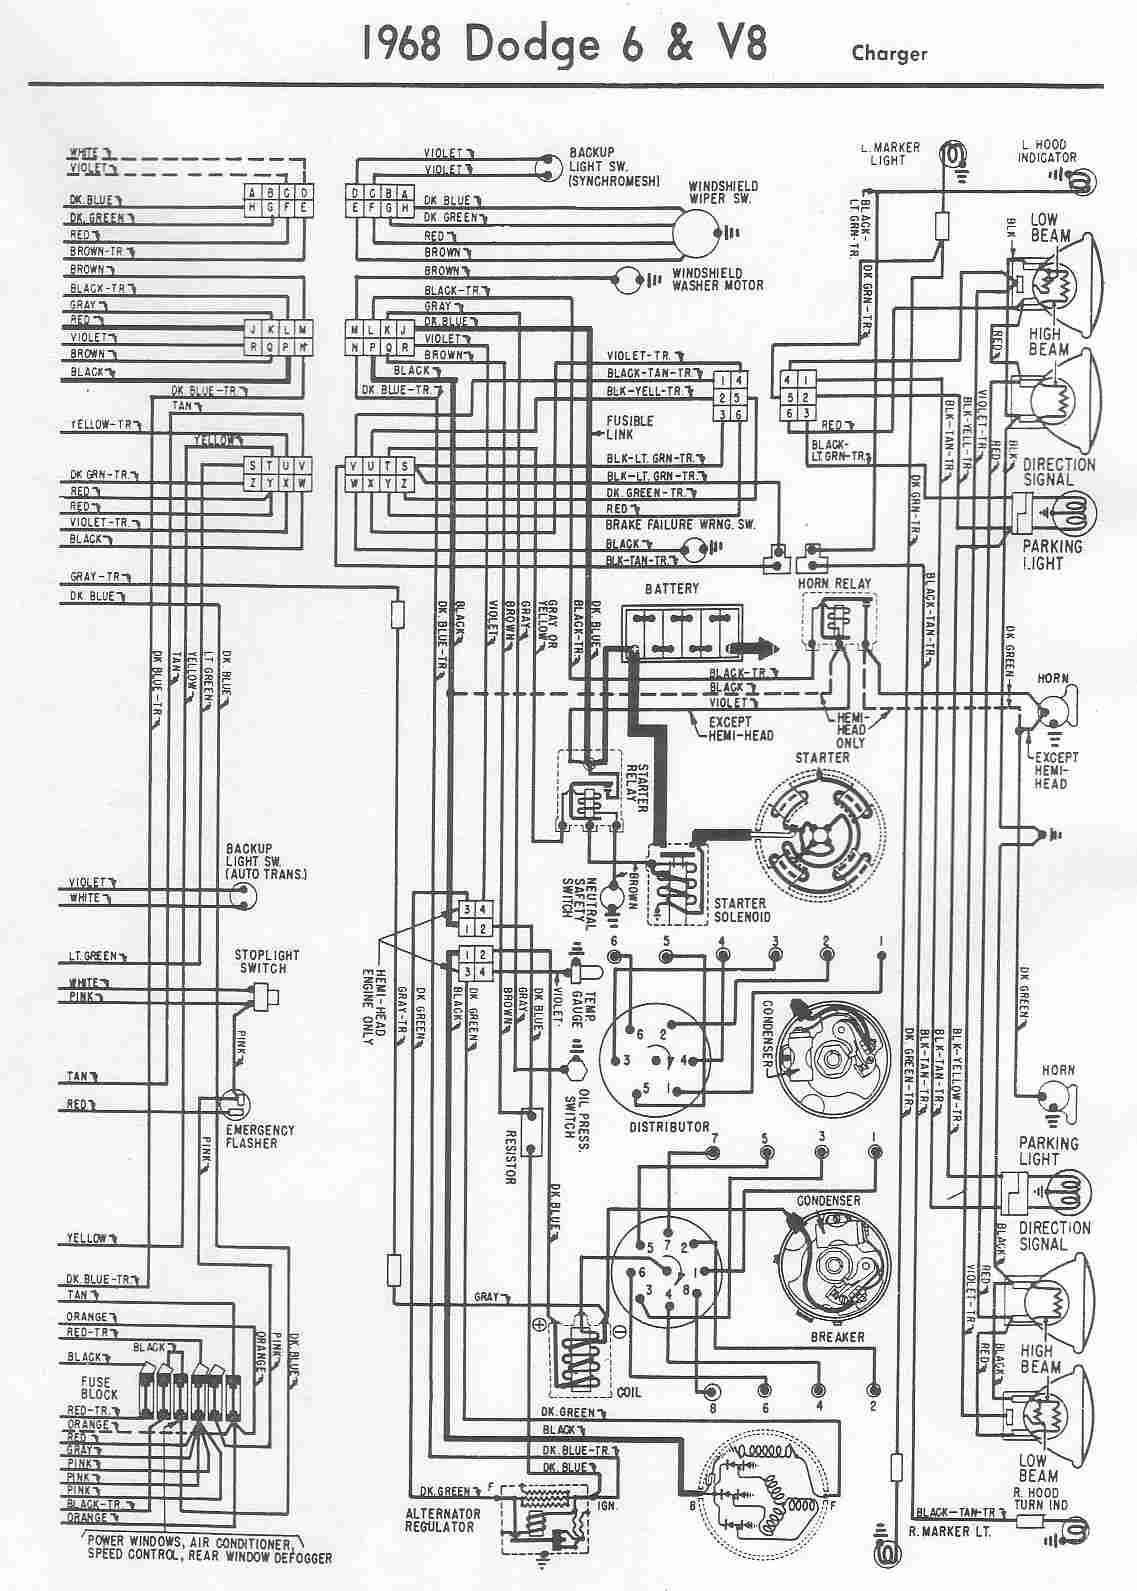 charger electrical wiring diagram of 1968 dodge 6 and v8?t=1508404771 dodge car manuals, wiring diagrams pdf & fault codes Multi Speed Blower Motor Wiring at n-0.co